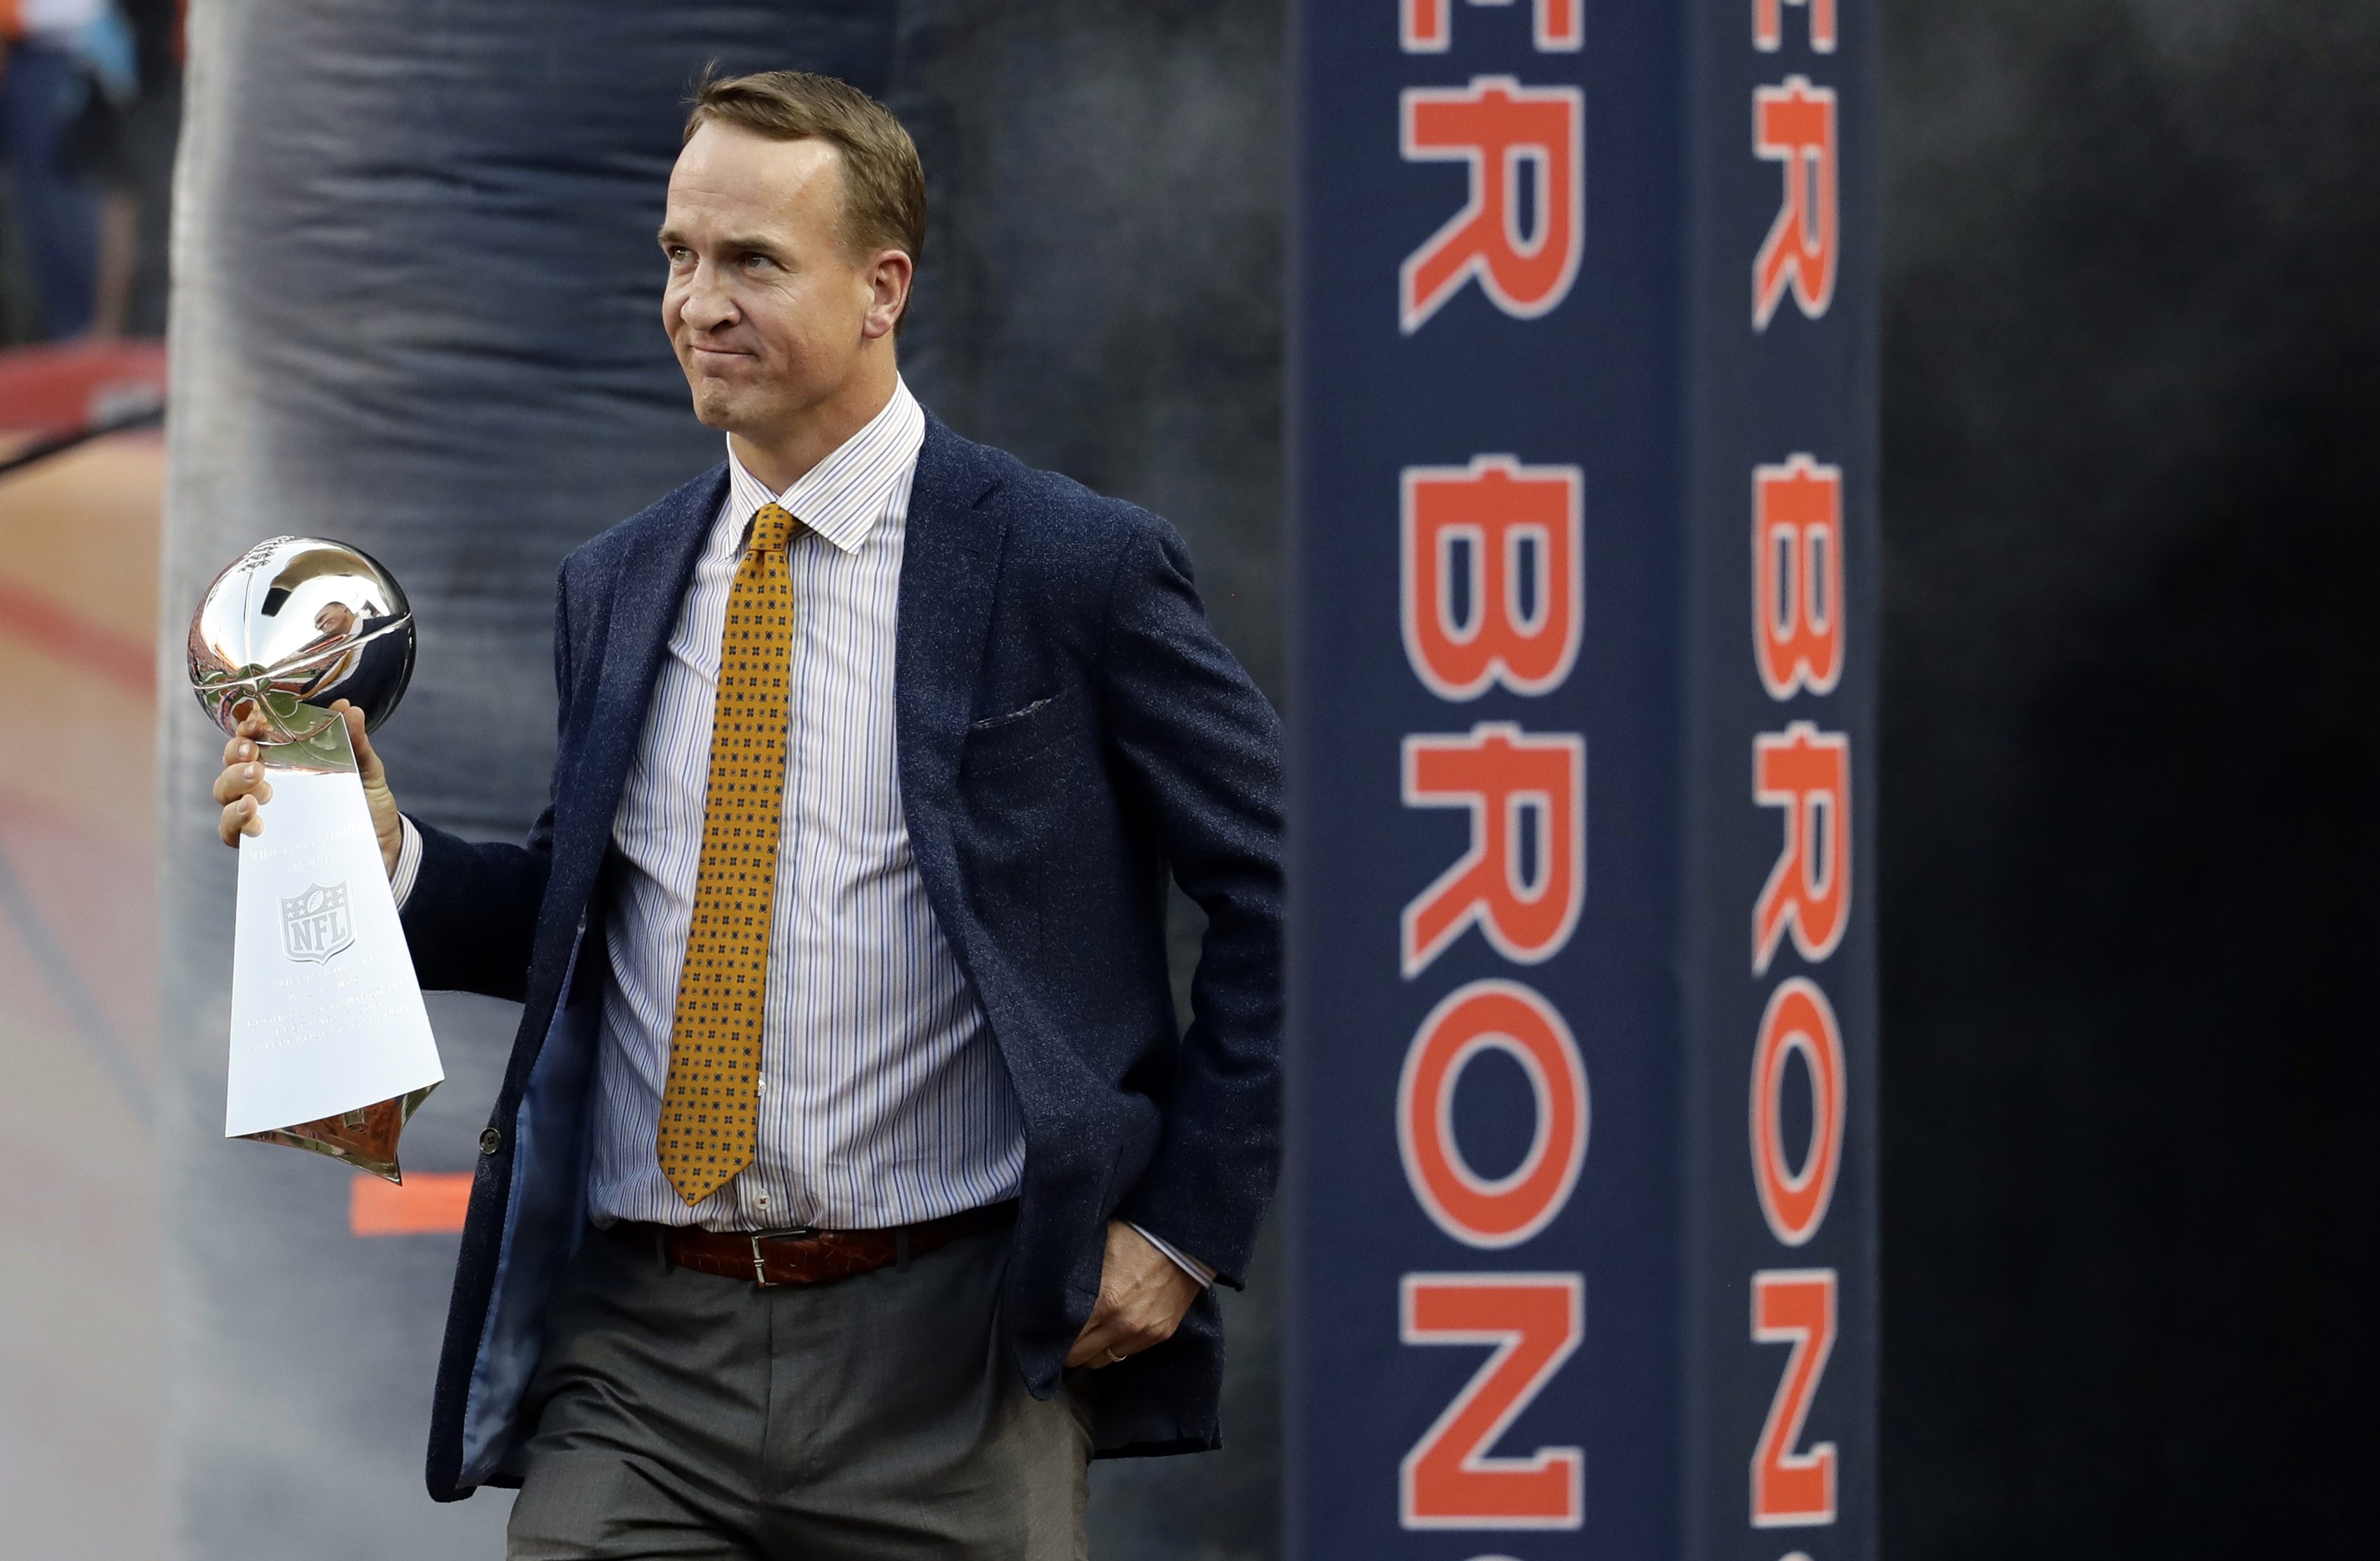 FILE - In this Sept. 8, 2016, file photo, former Denver Broncos quarterback Peyton Manning carries the Vince Lombardi Trophy from Super Bowl 50 onto the field prior to an NFL football game against the Carolina Panthers in Denver. Manning has gone to TV co